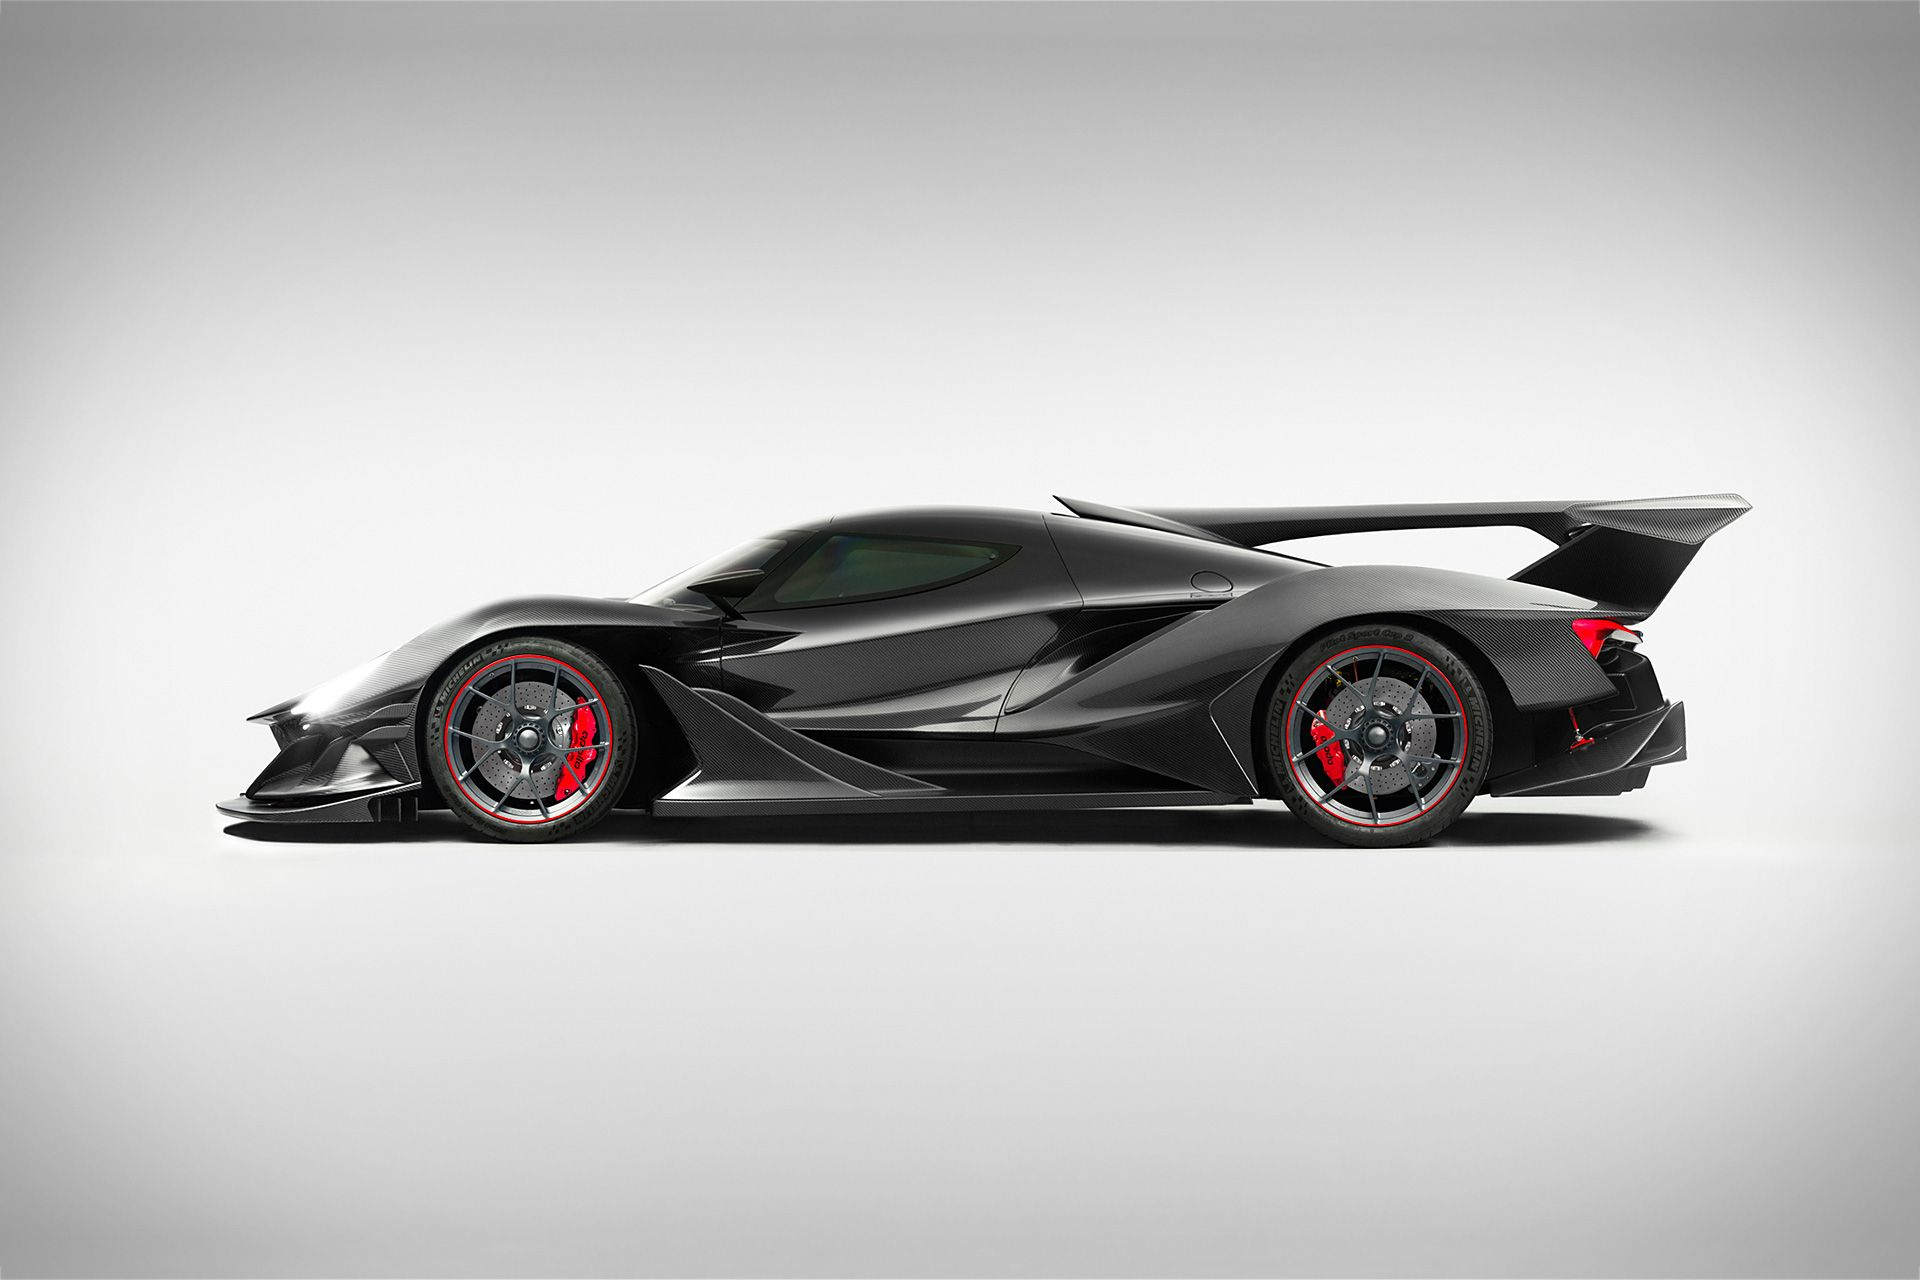 Apollo Intensa Emozione Supercar Super Carros Carros E Motos Supercarros